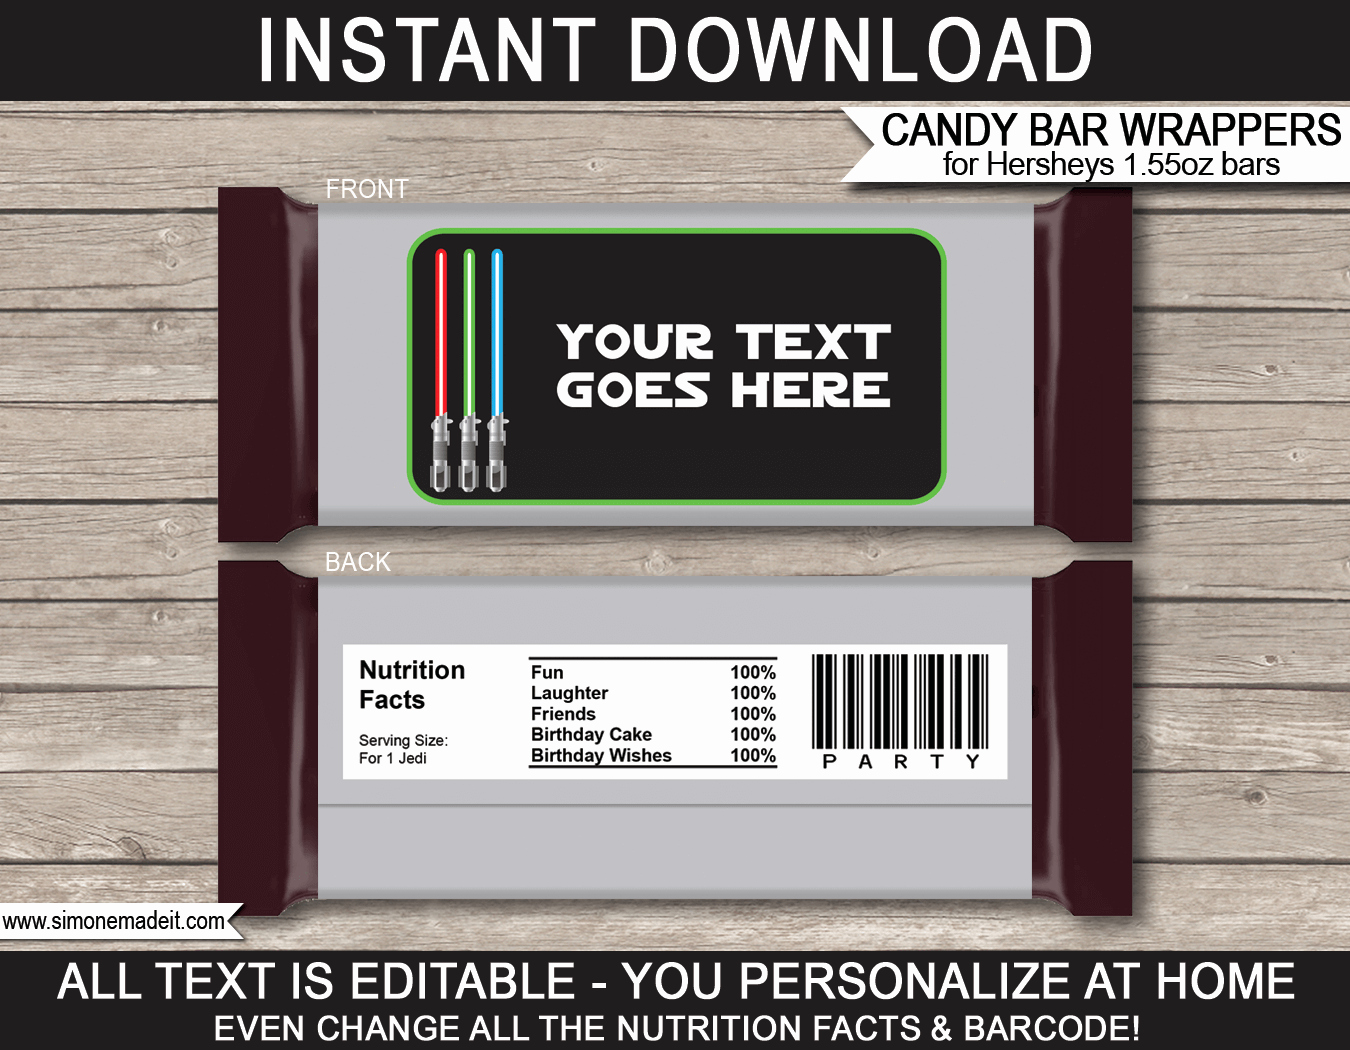 Template for Candy Bar Wrapper Lovely Star Wars Hershey Candy Bar Wrappers